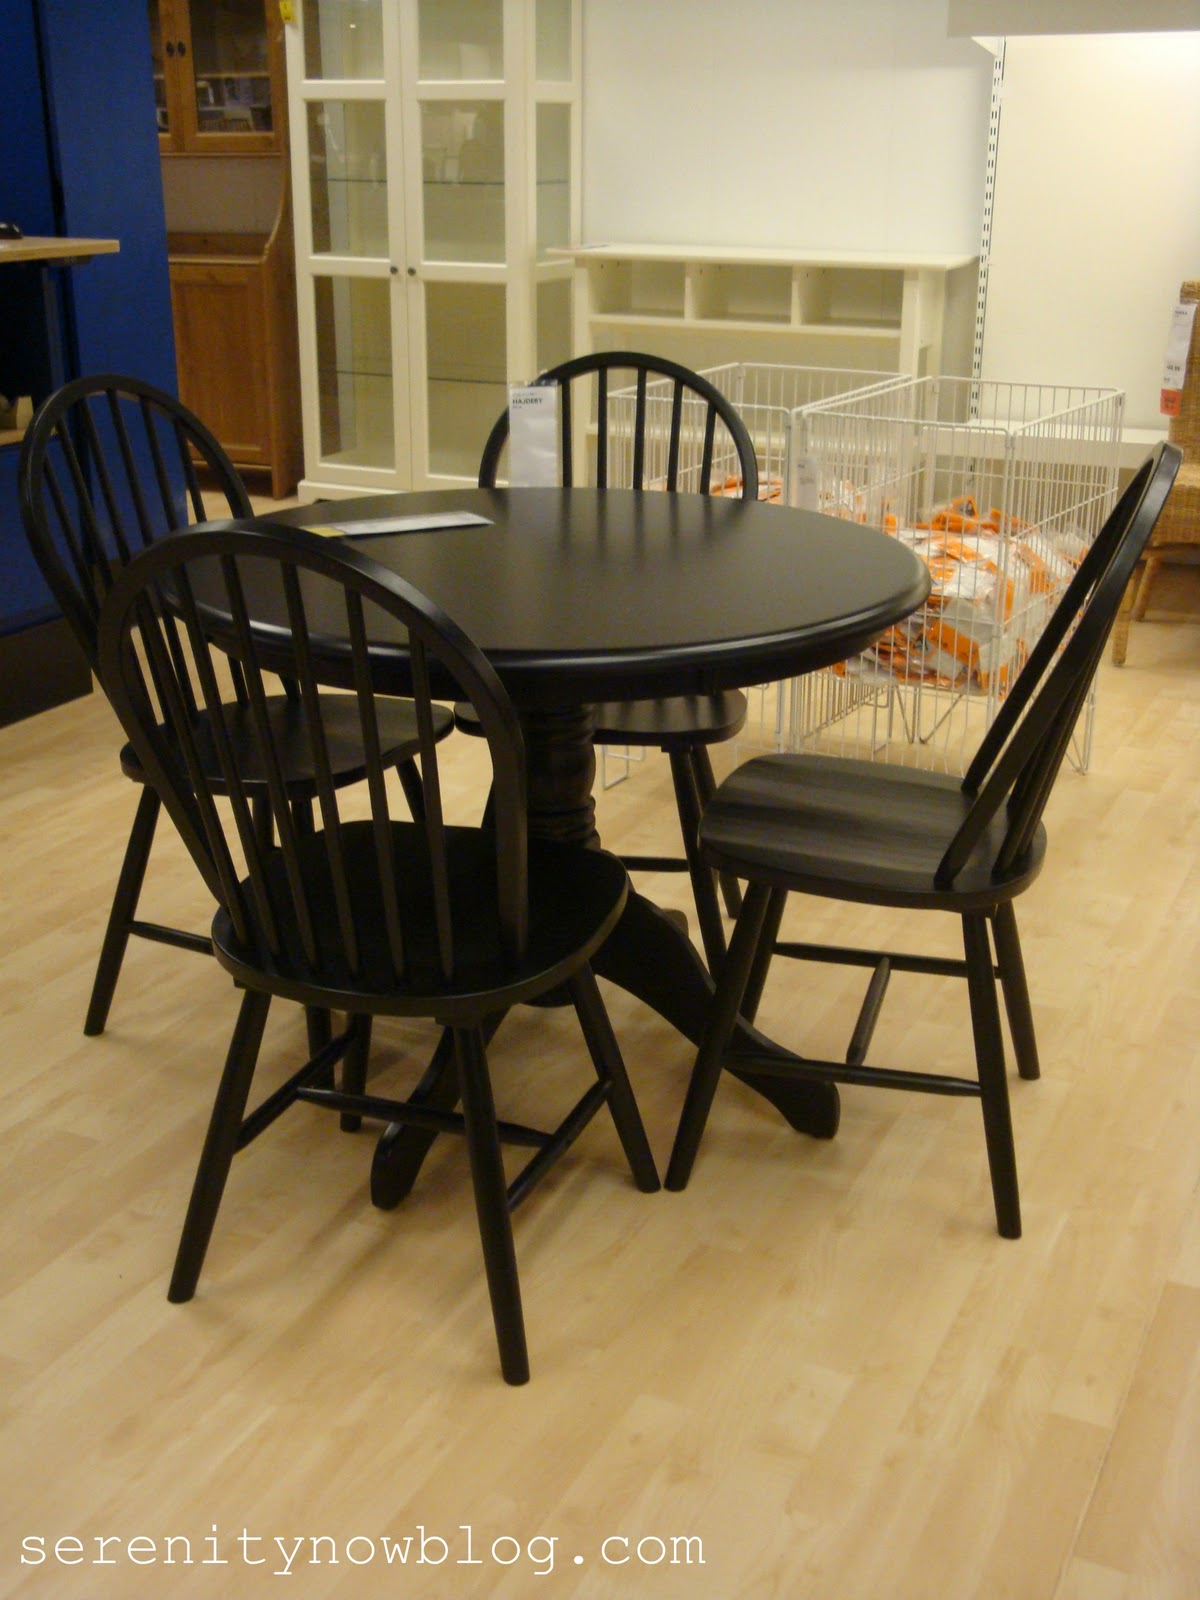 for sale ikea dining room table chairs and ikea bed full size bed frame